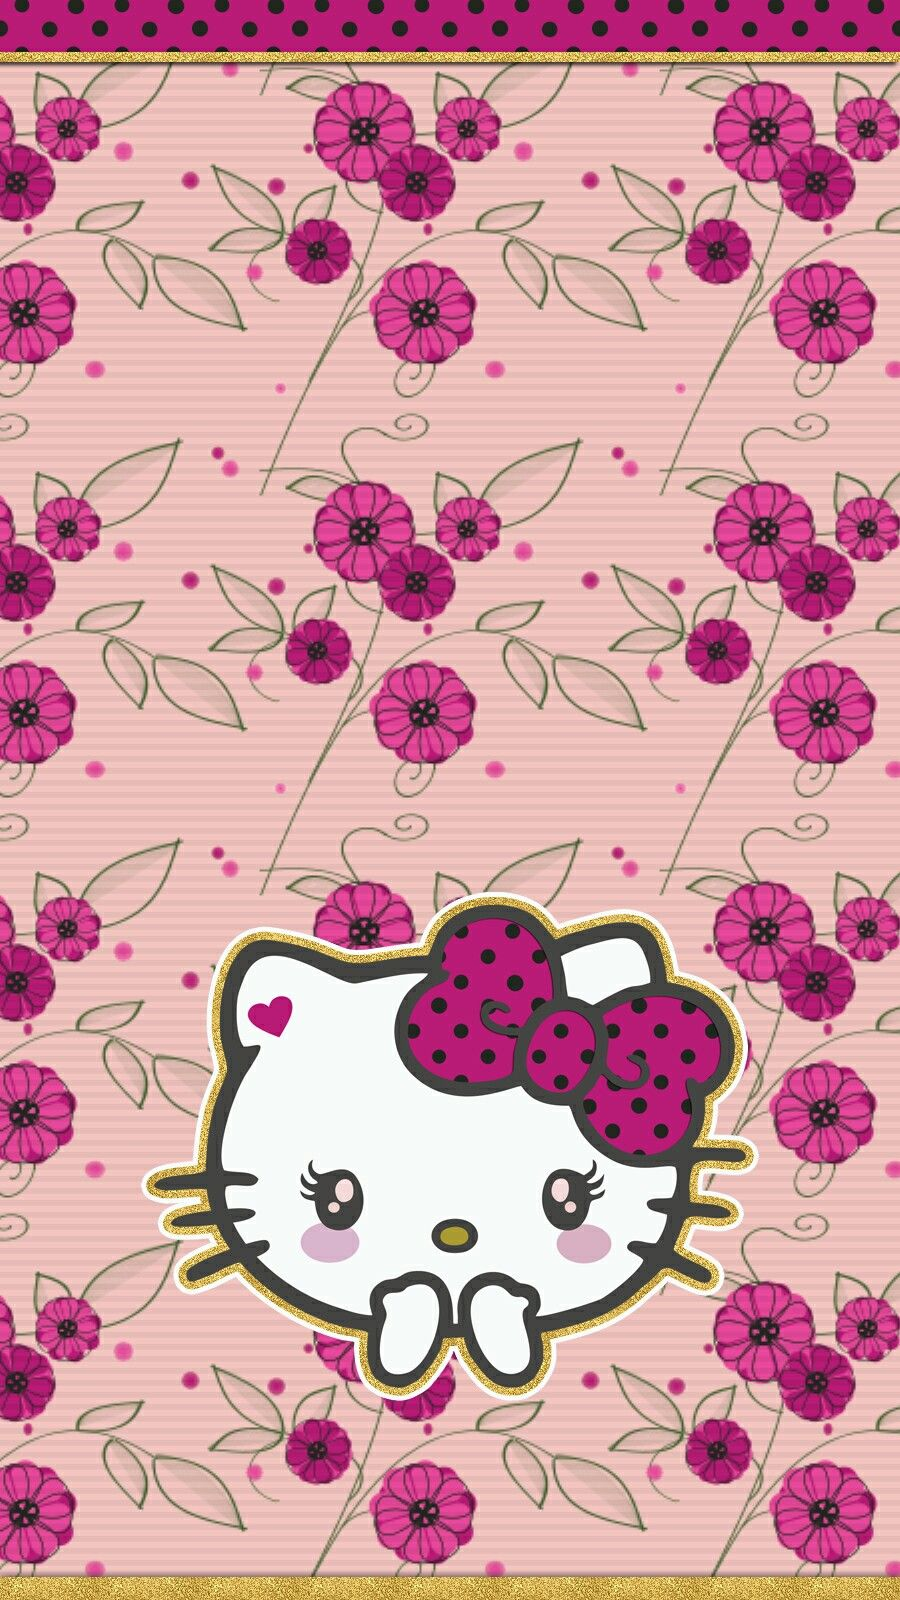 Good Wallpaper Mobile Hello Kitty - 3c0efbeb0547d9c72d198bb81cbbe8bb  Pic_52050.jpg